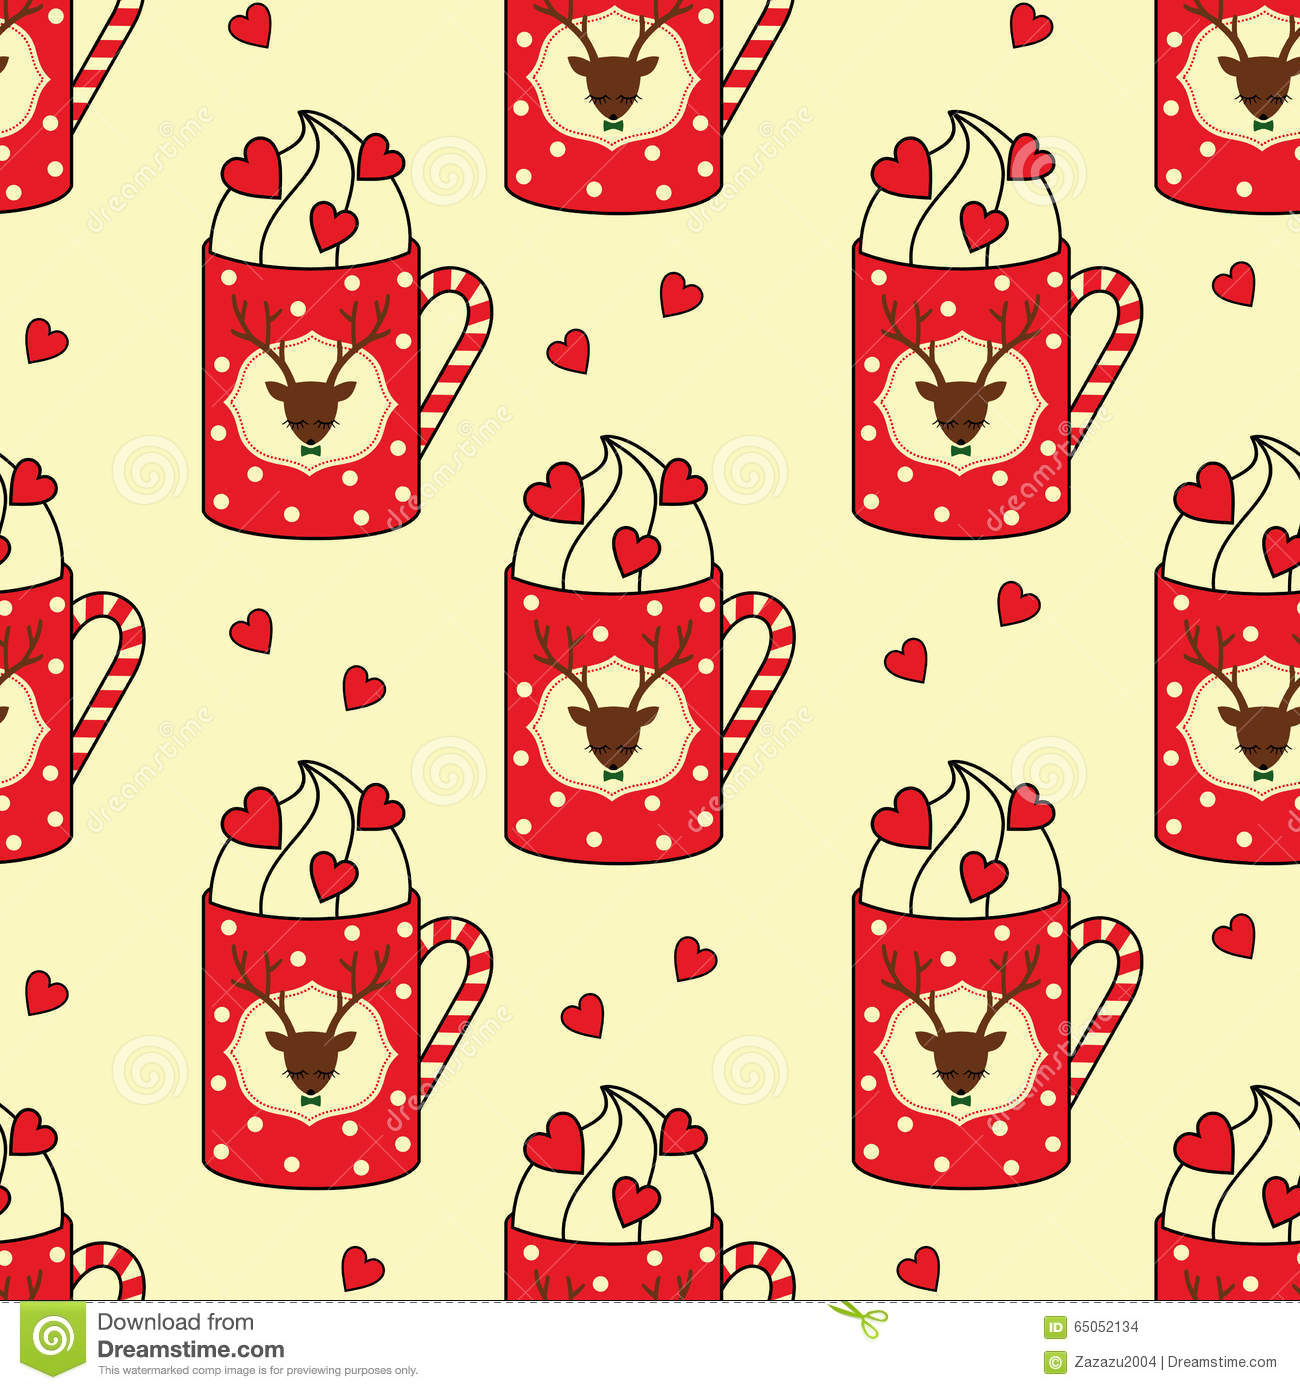 Cute Cups With Deer Candy Cane Hearts Seamless Pattern